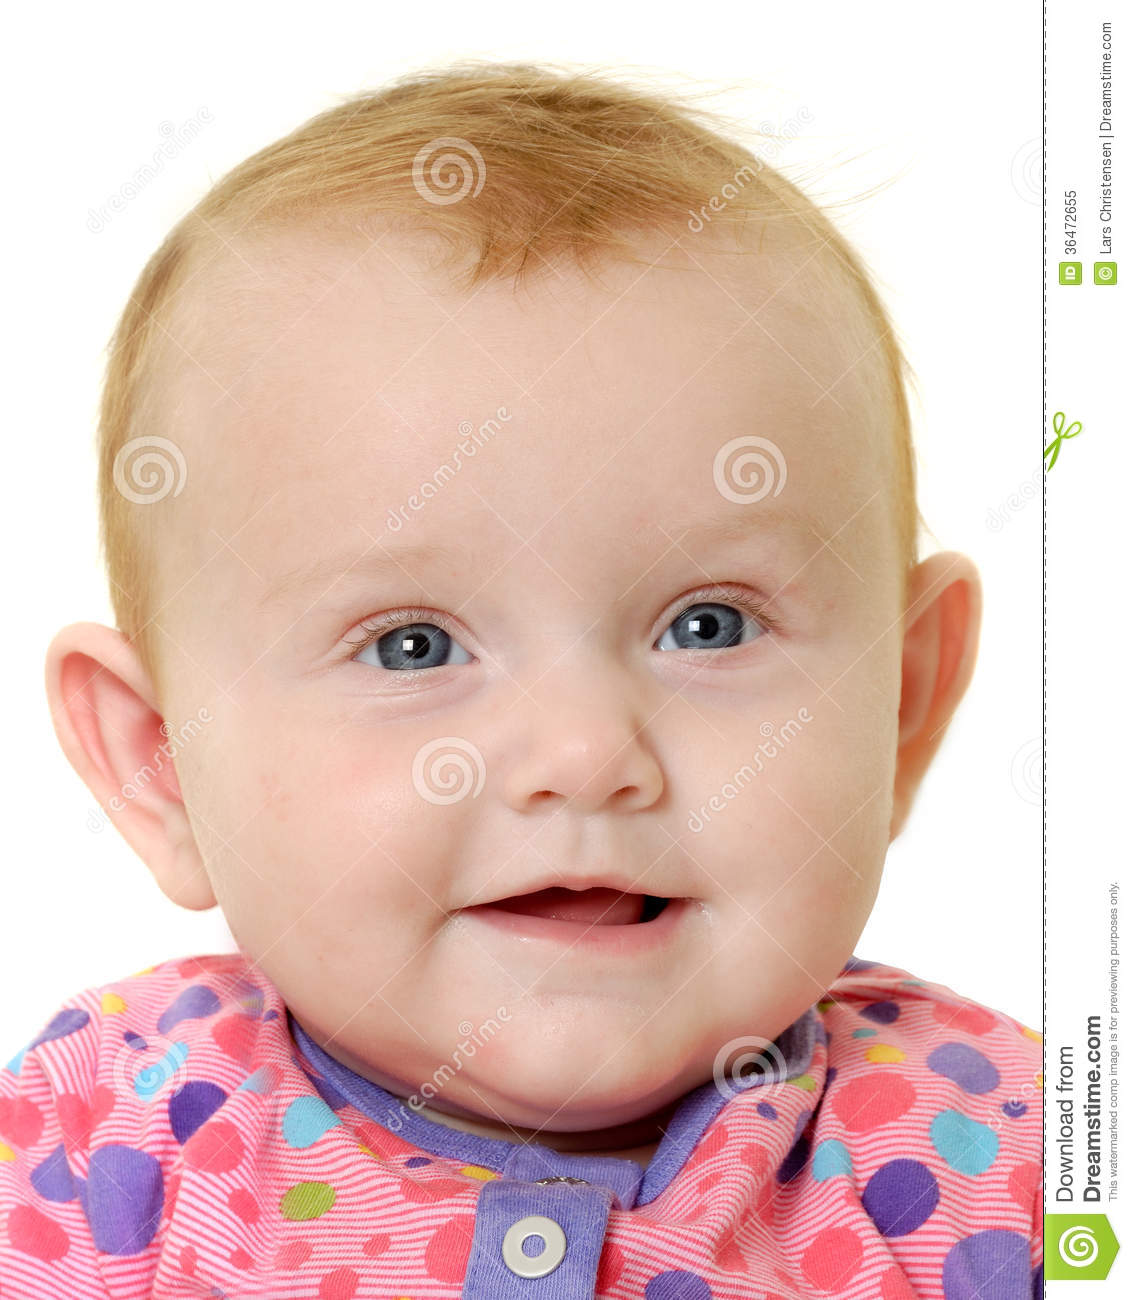 Happy Baby Face Royalty Free Stock Photo - Image: 36472655